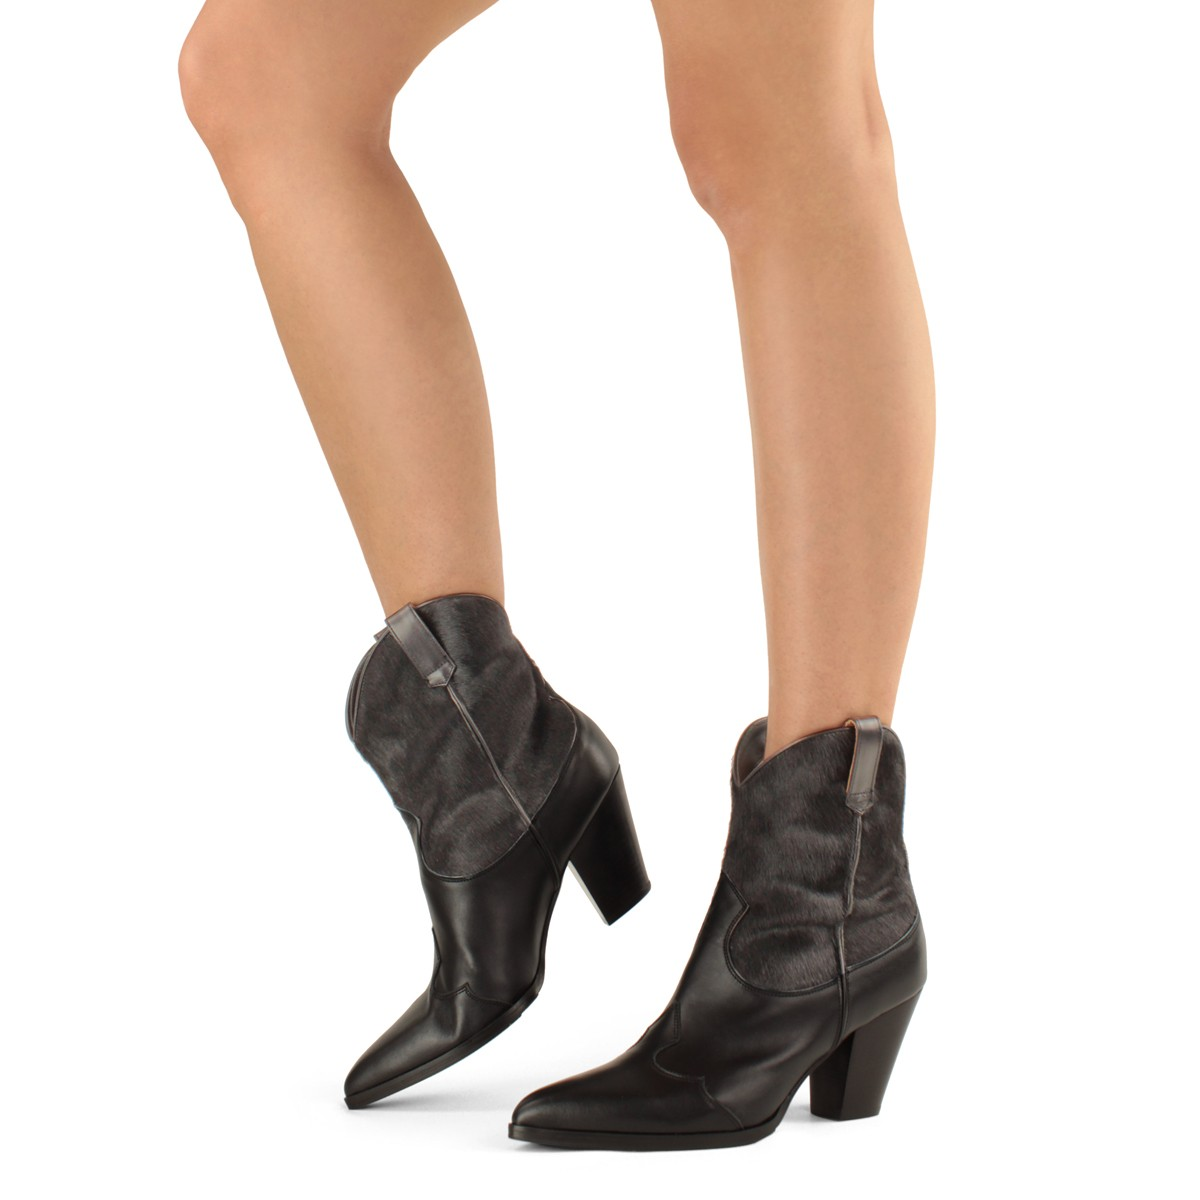 BLACK CALF HAIR COWBOY-STYLE ANKLE BOOTS